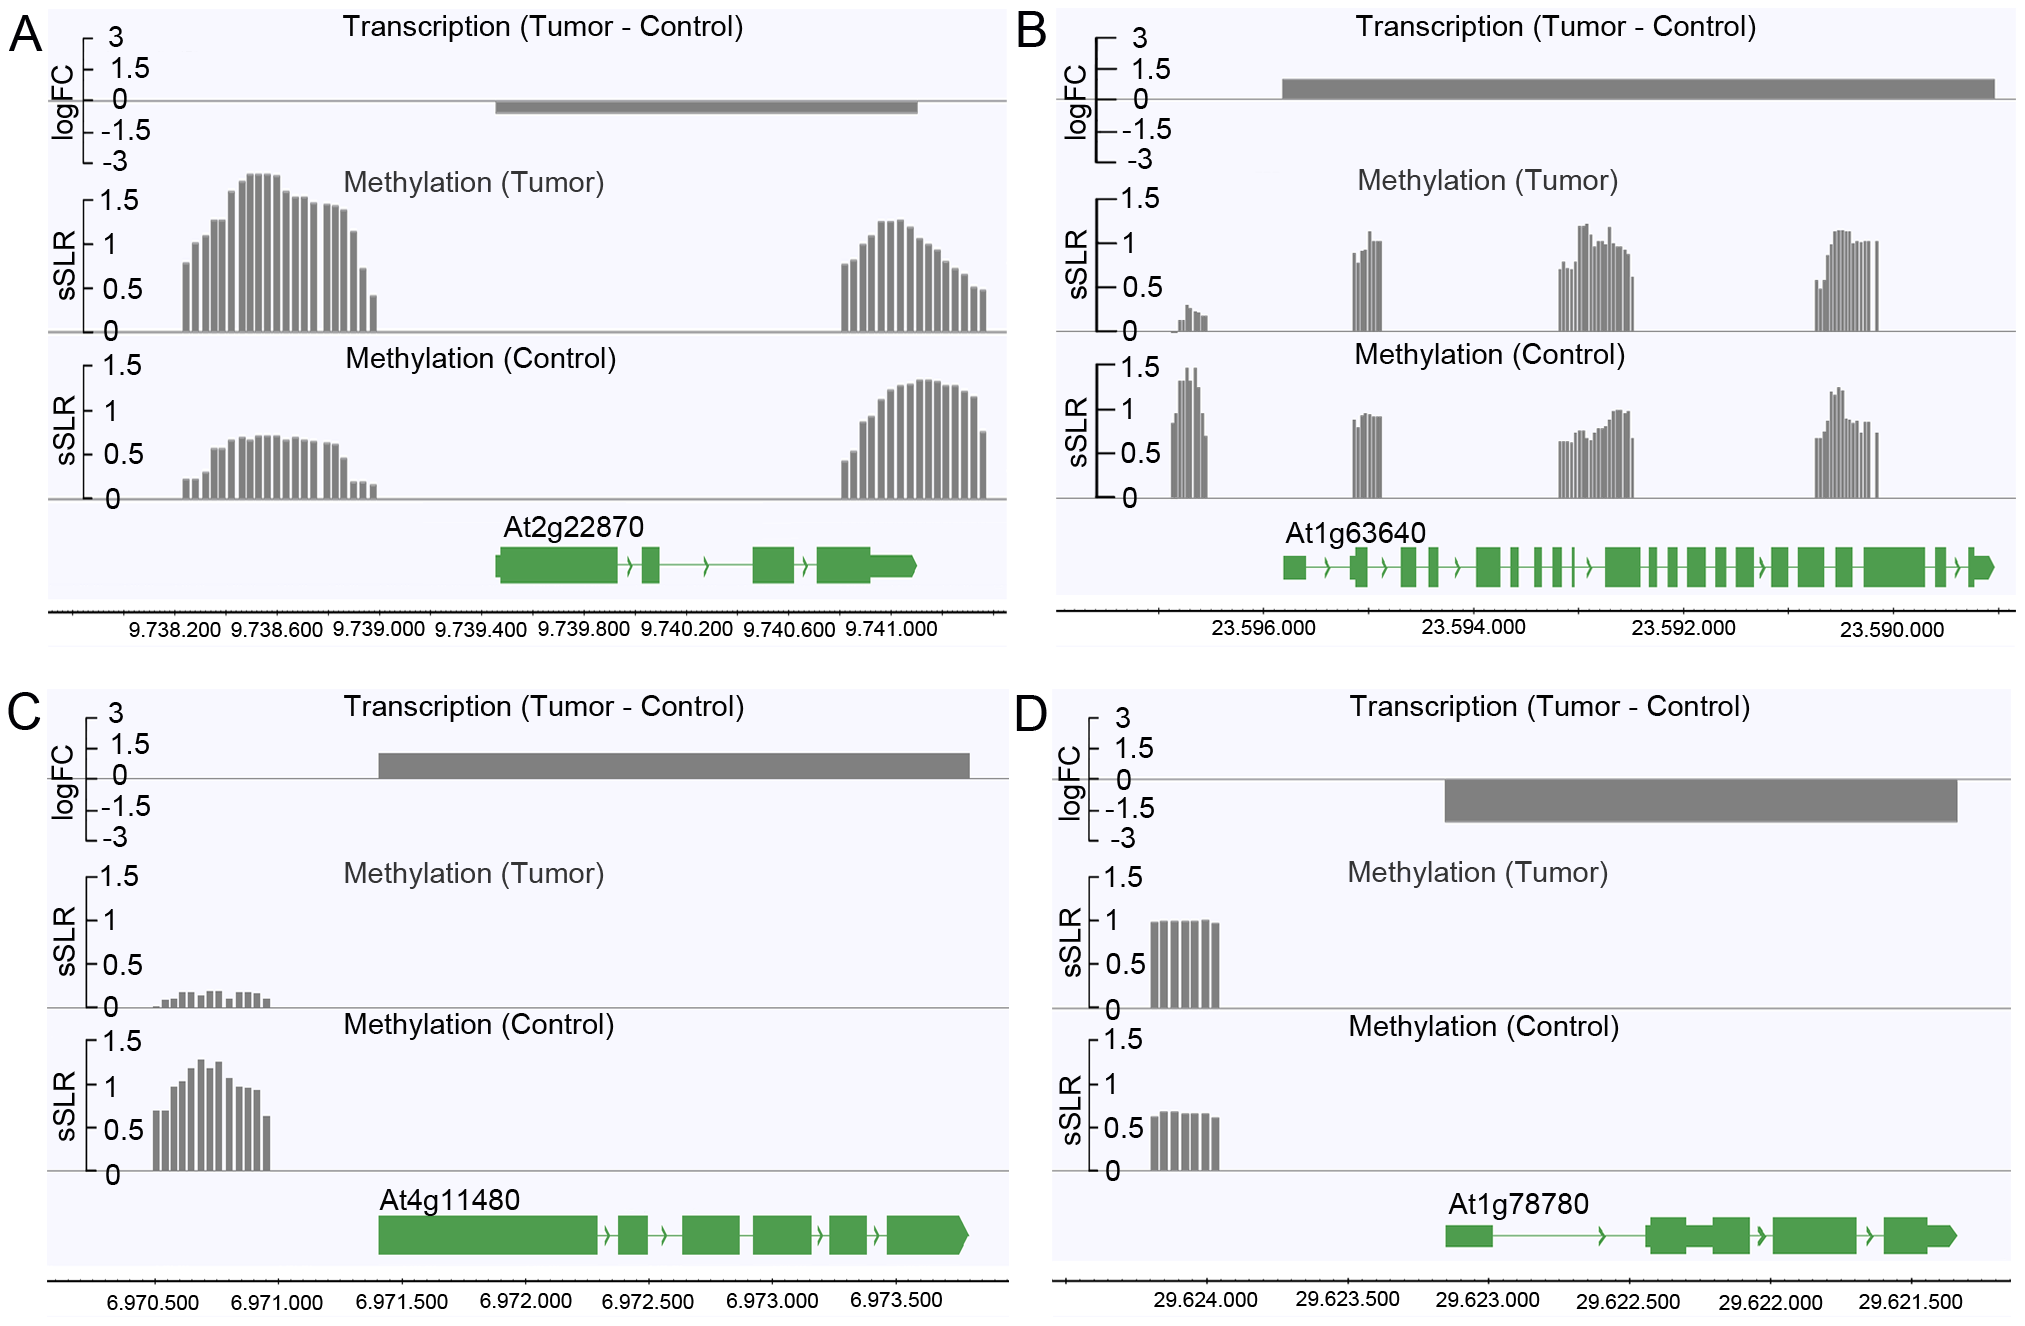 Differences in the degree of methylation in upstream regions correlate with differential transcription.